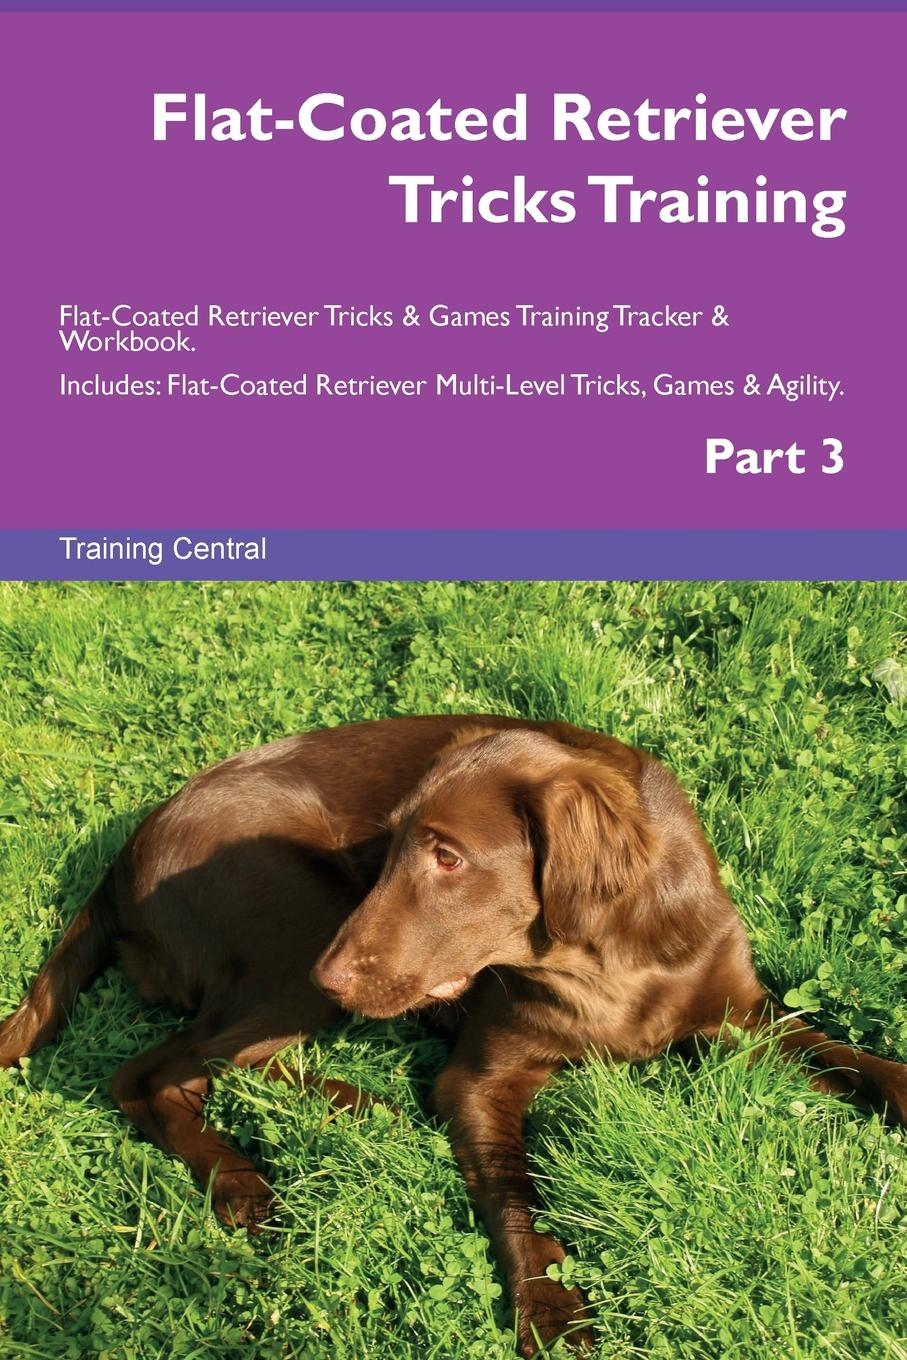 Training Central Flat-Coated Retriever Tricks Training Flat-Coated Retriever Tricks . Games Training Tracker . Workbook. Includes. Flat-Coated Retriever Multi-Level Tricks, Games . Agility. Part 3 this book loves you